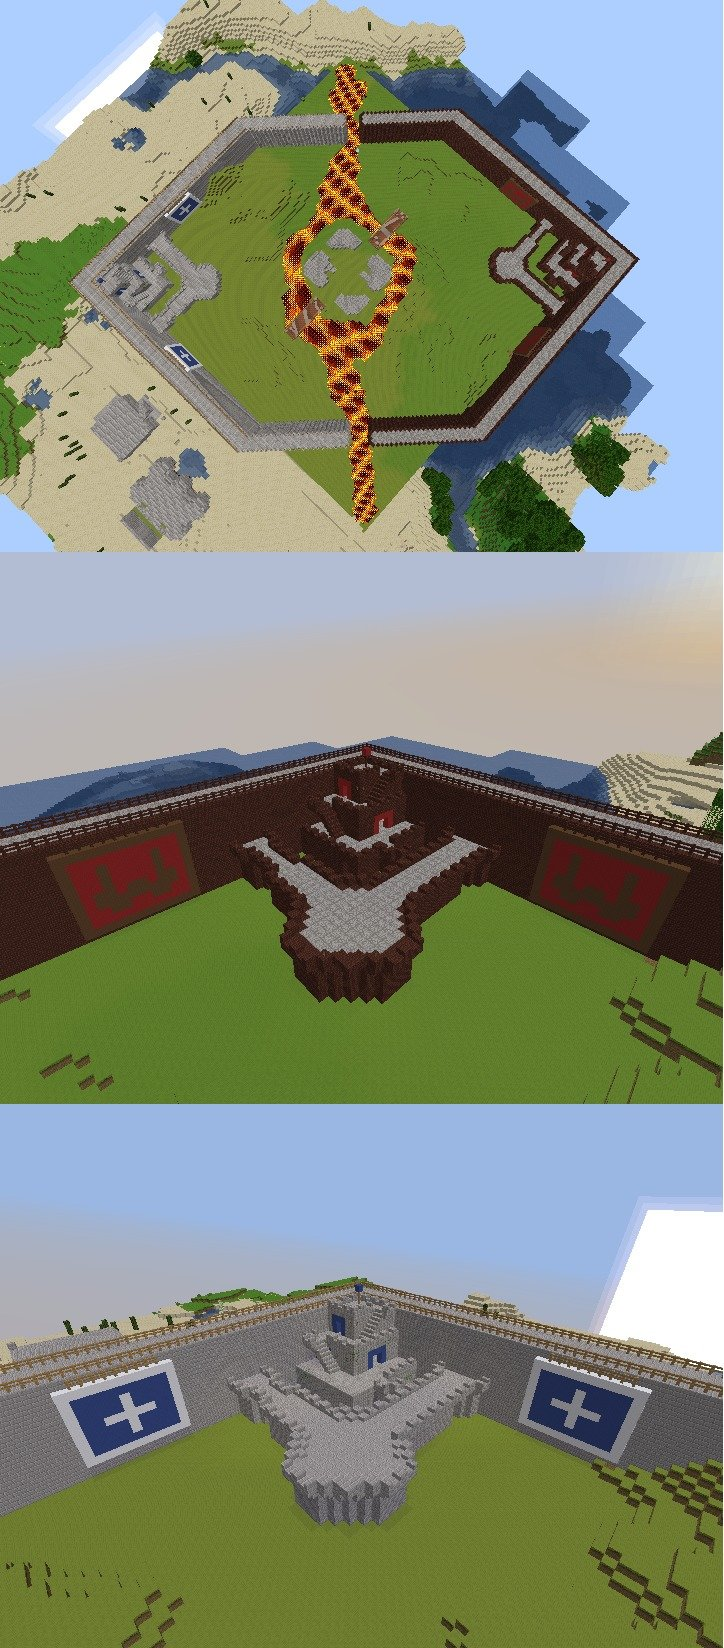 Minecraft CastleWars. Anyone who plays Runescape probably knows what this is. Helped build with my some of my friends.. naif Iri- Mia'. It has been like 5 years since I last played RS... and Castle Wars was my favorite mini-game, along with Pest Control.